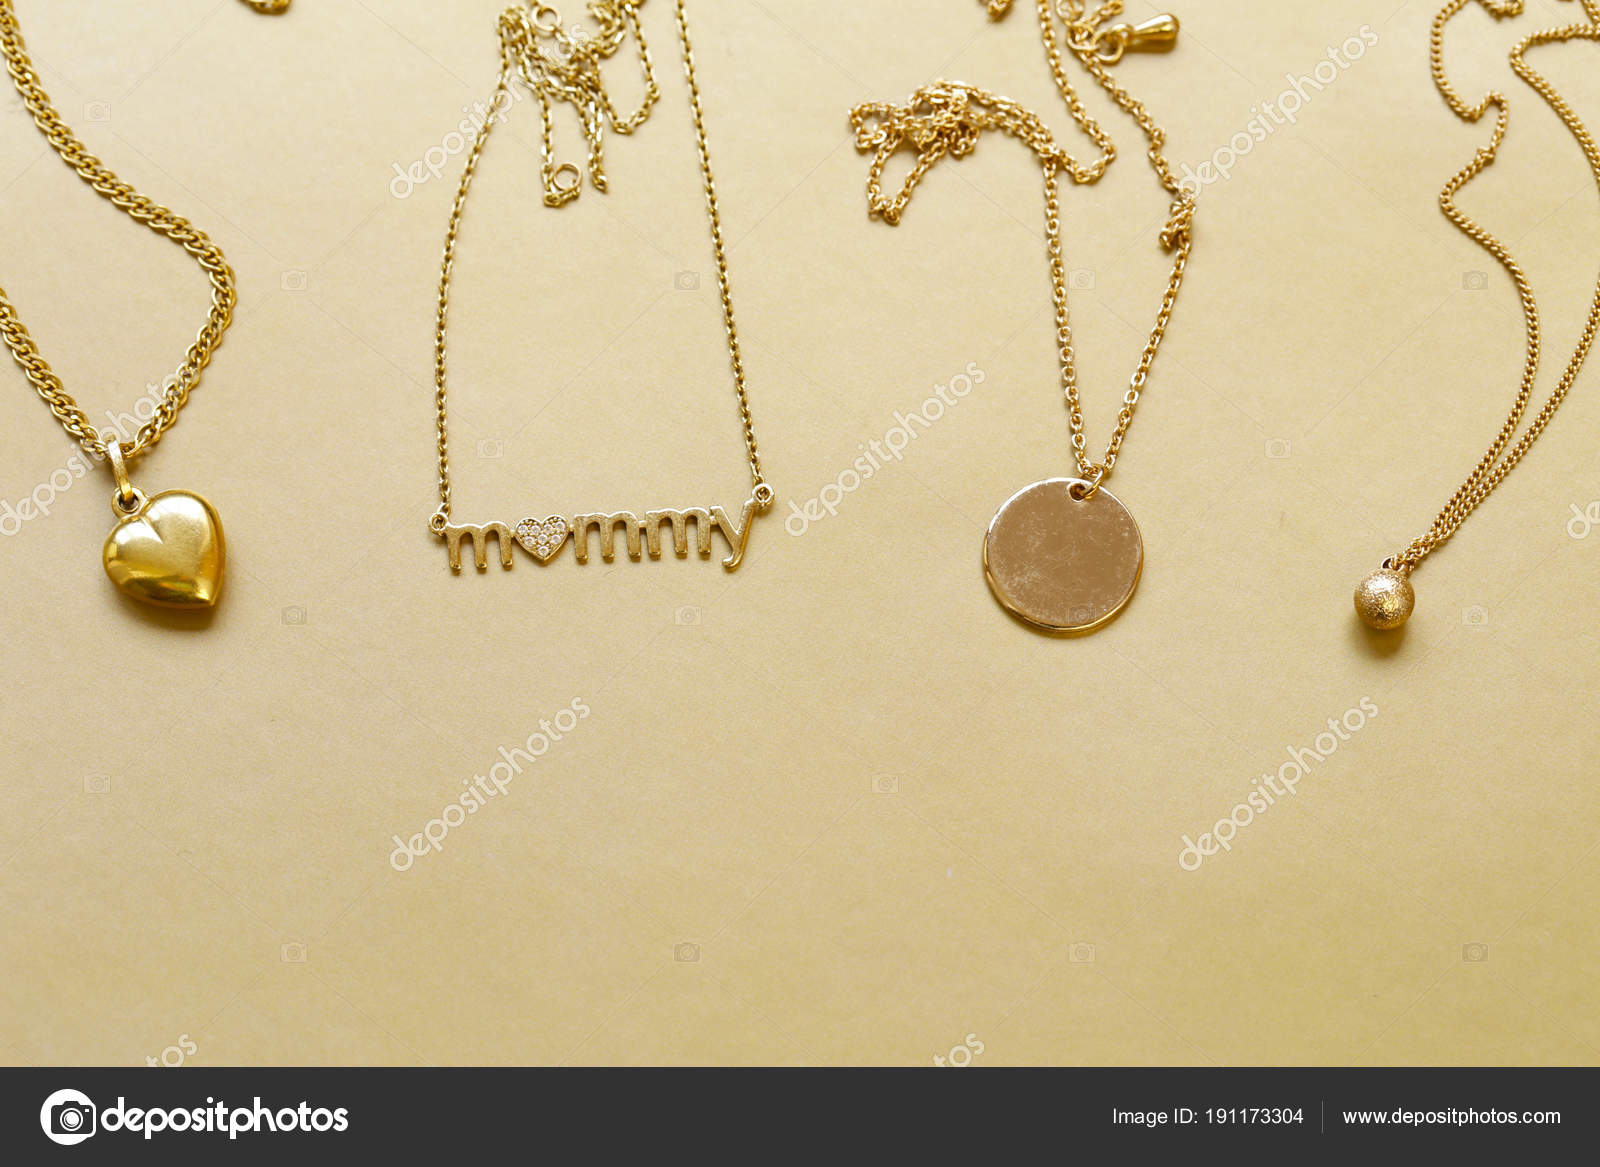 Gold chains necklaces pendants stock photo dream79 191173304 gold chains necklaces pendants stock photo aloadofball Choice Image